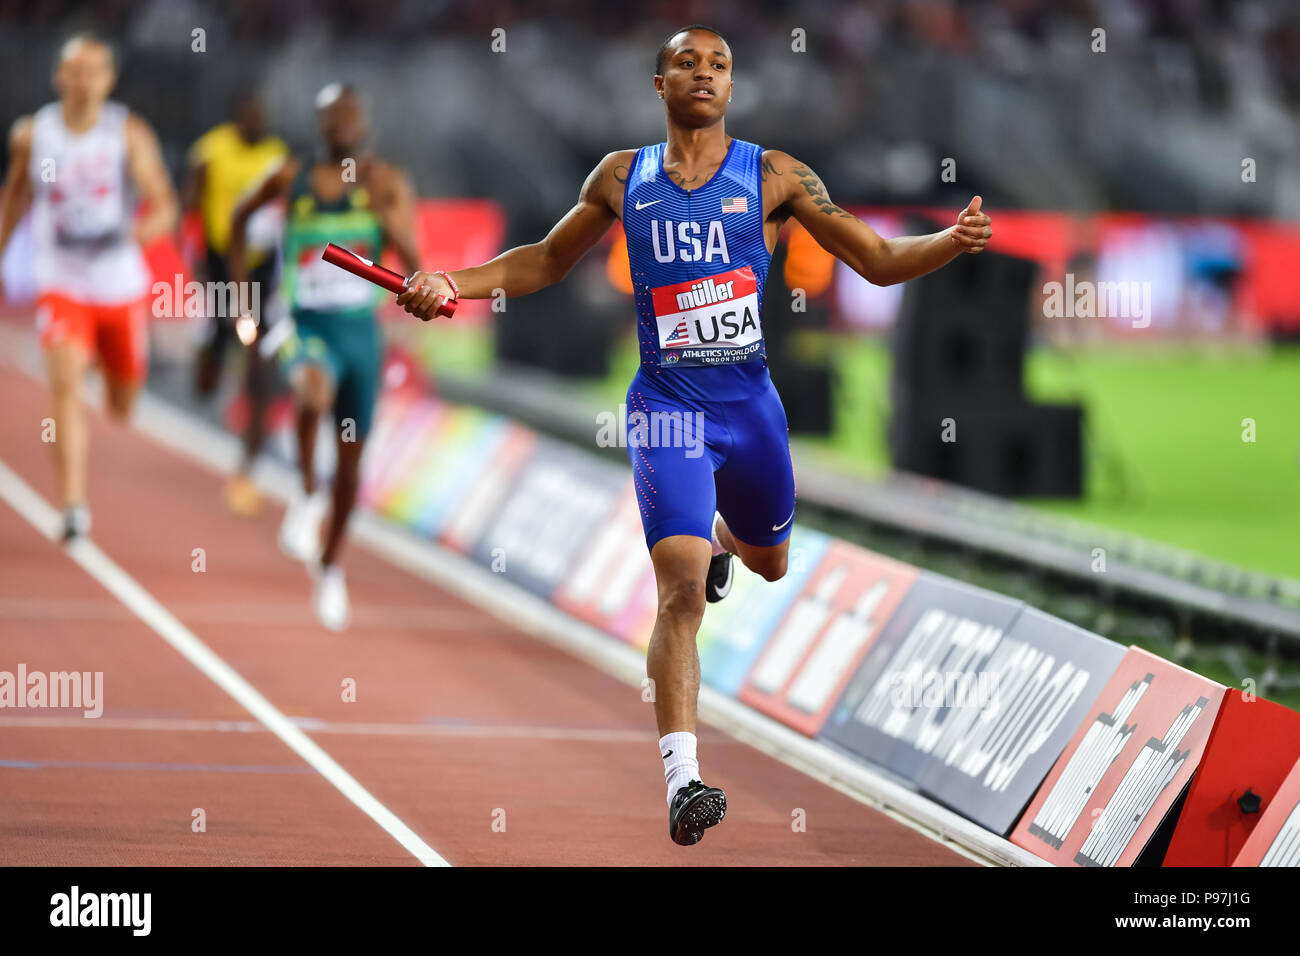 Kahmari Montgomery (USA) in Men's 4x 400m Relay during Athletics World Cup London 2018 at London Stadium on Sunday, 15 July 2018. LONDON, ENGLAND. Credit: Taka G Wu - Stock Image